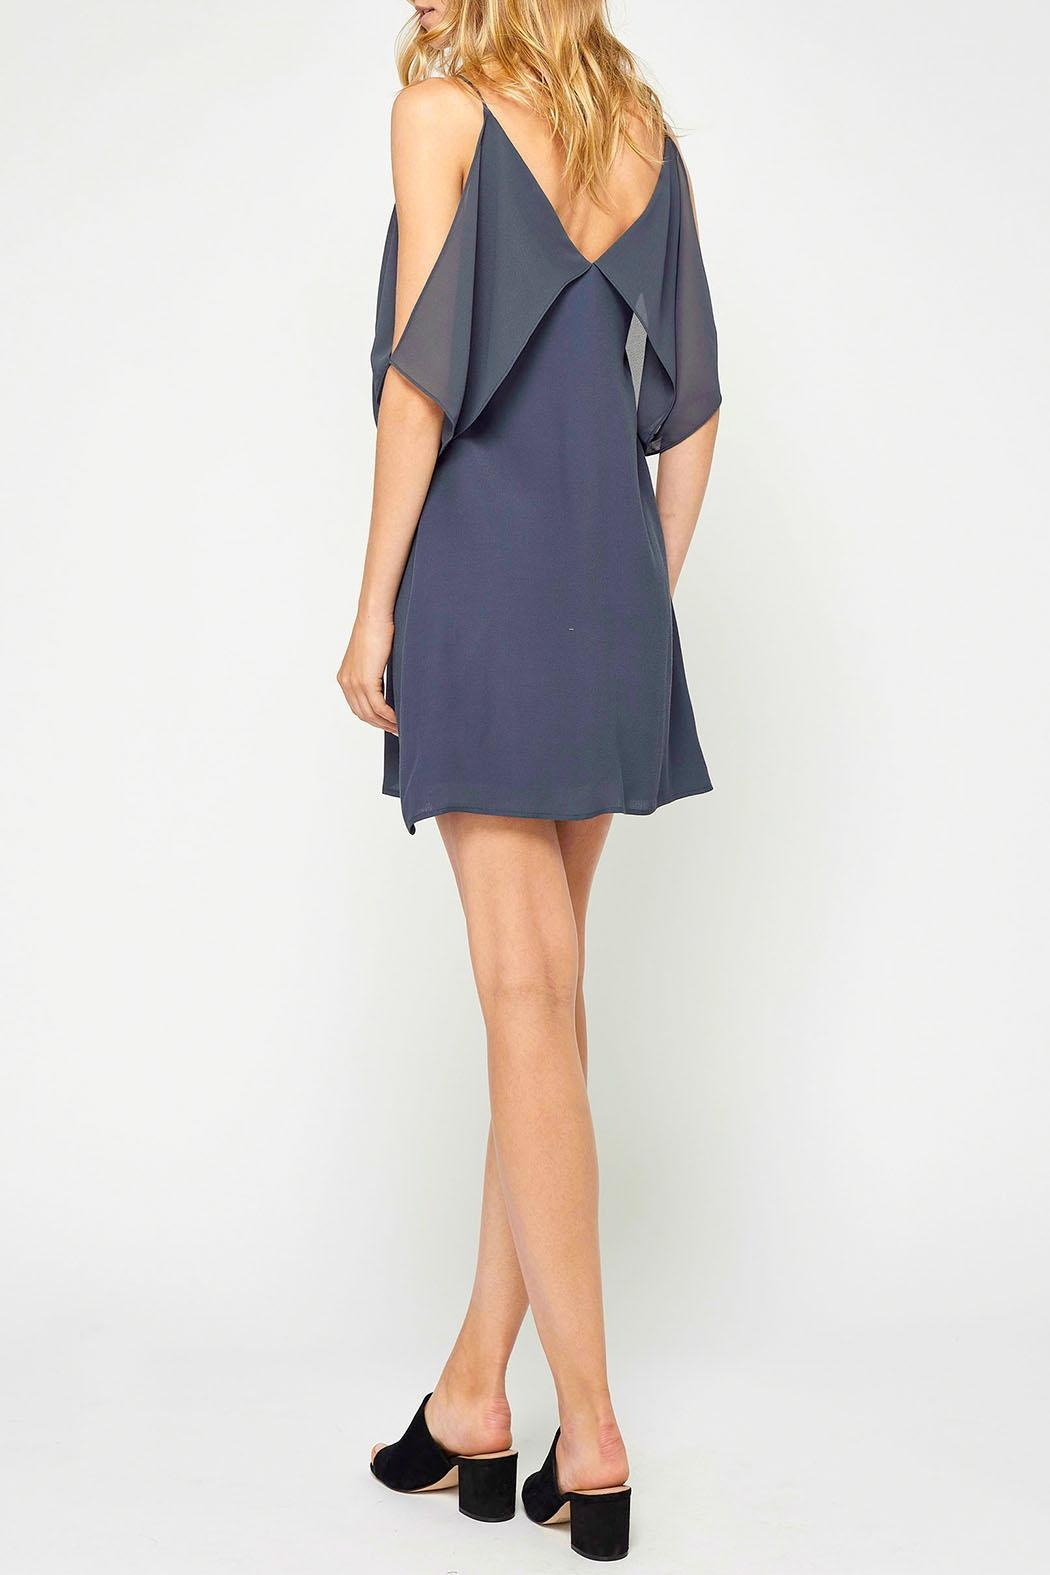 Gentle Fawn Carrera Dress - Front Full Image